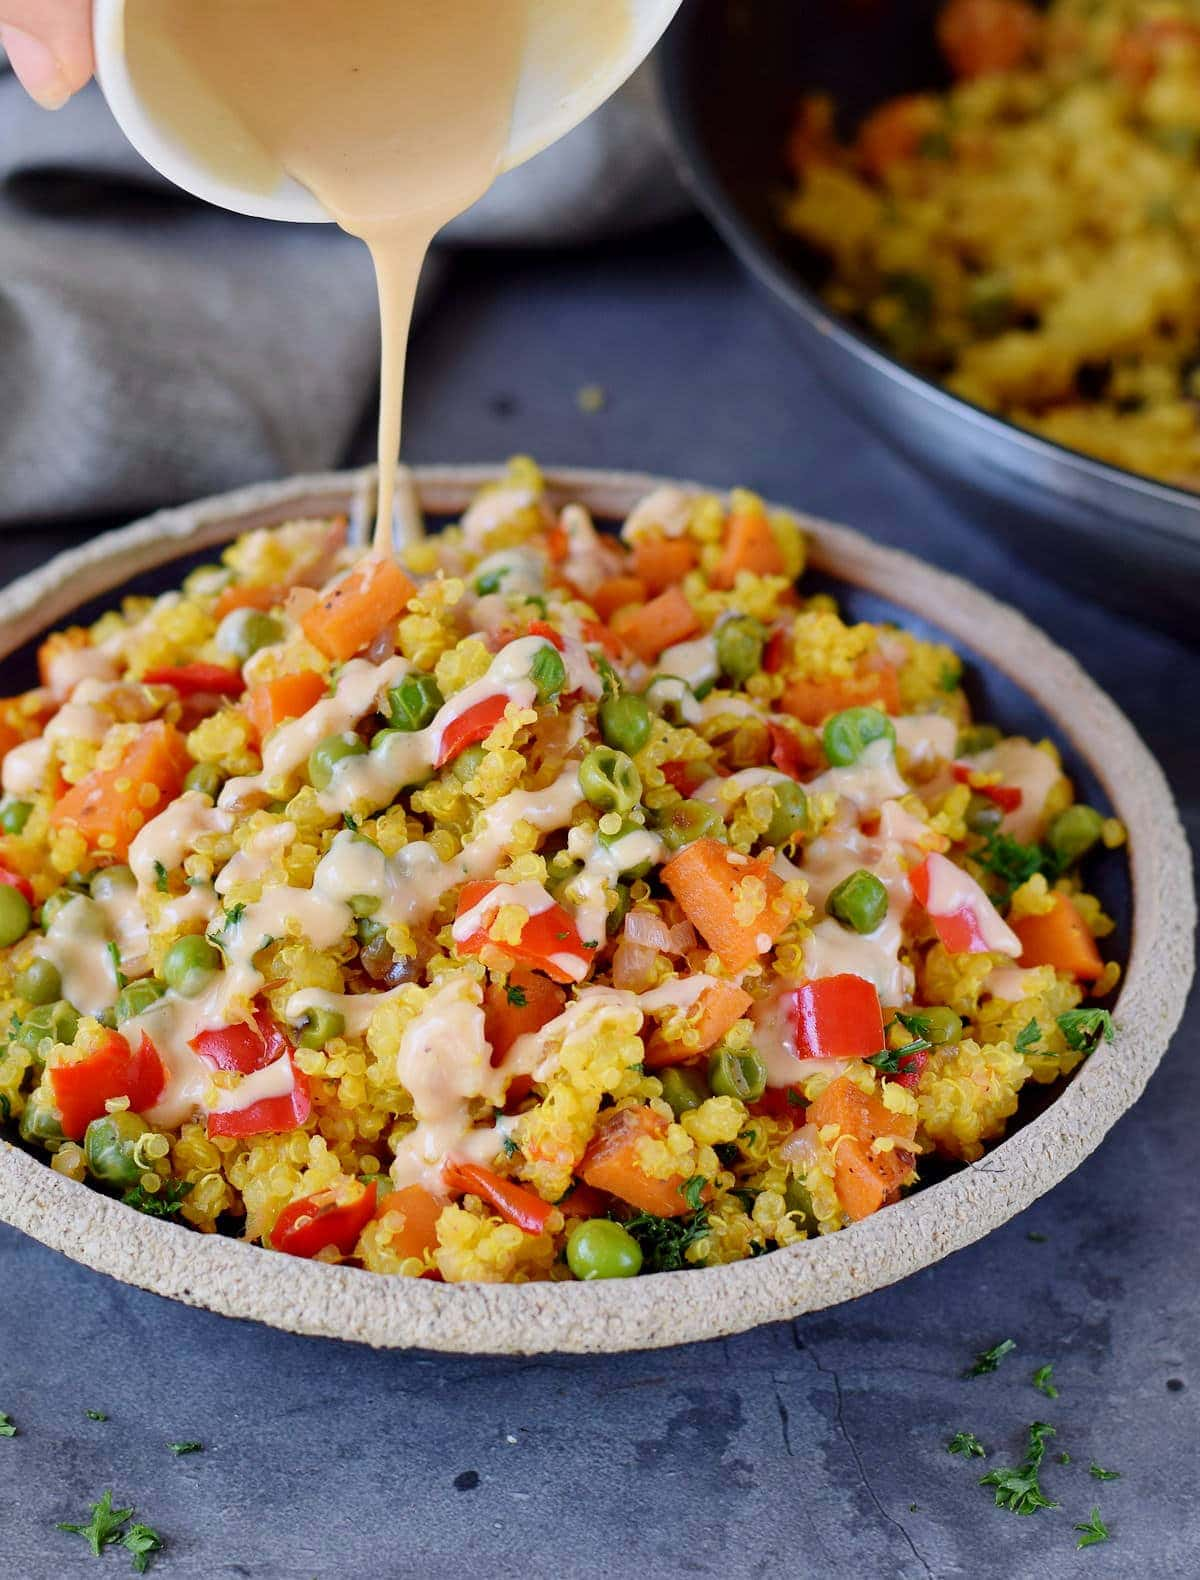 drizzling creamy salad dressing over quinoa pilaf